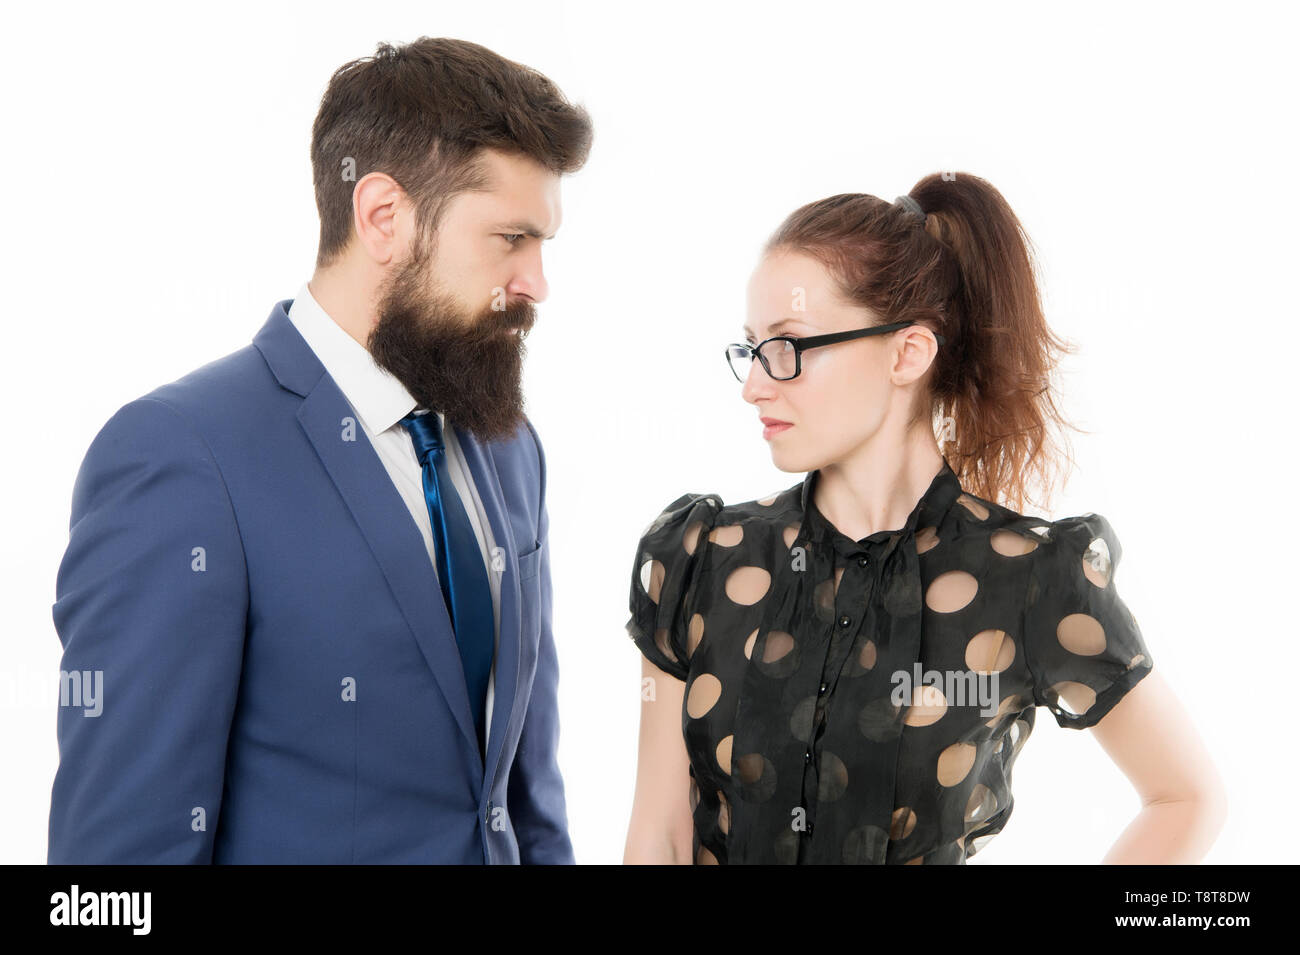 Get specific. Colleagues looking for new job. HR manager. Job interview. Office job lifestyle. Figure out type of position you would really enjoy and devote yourself finding something that matches. - Stock Image